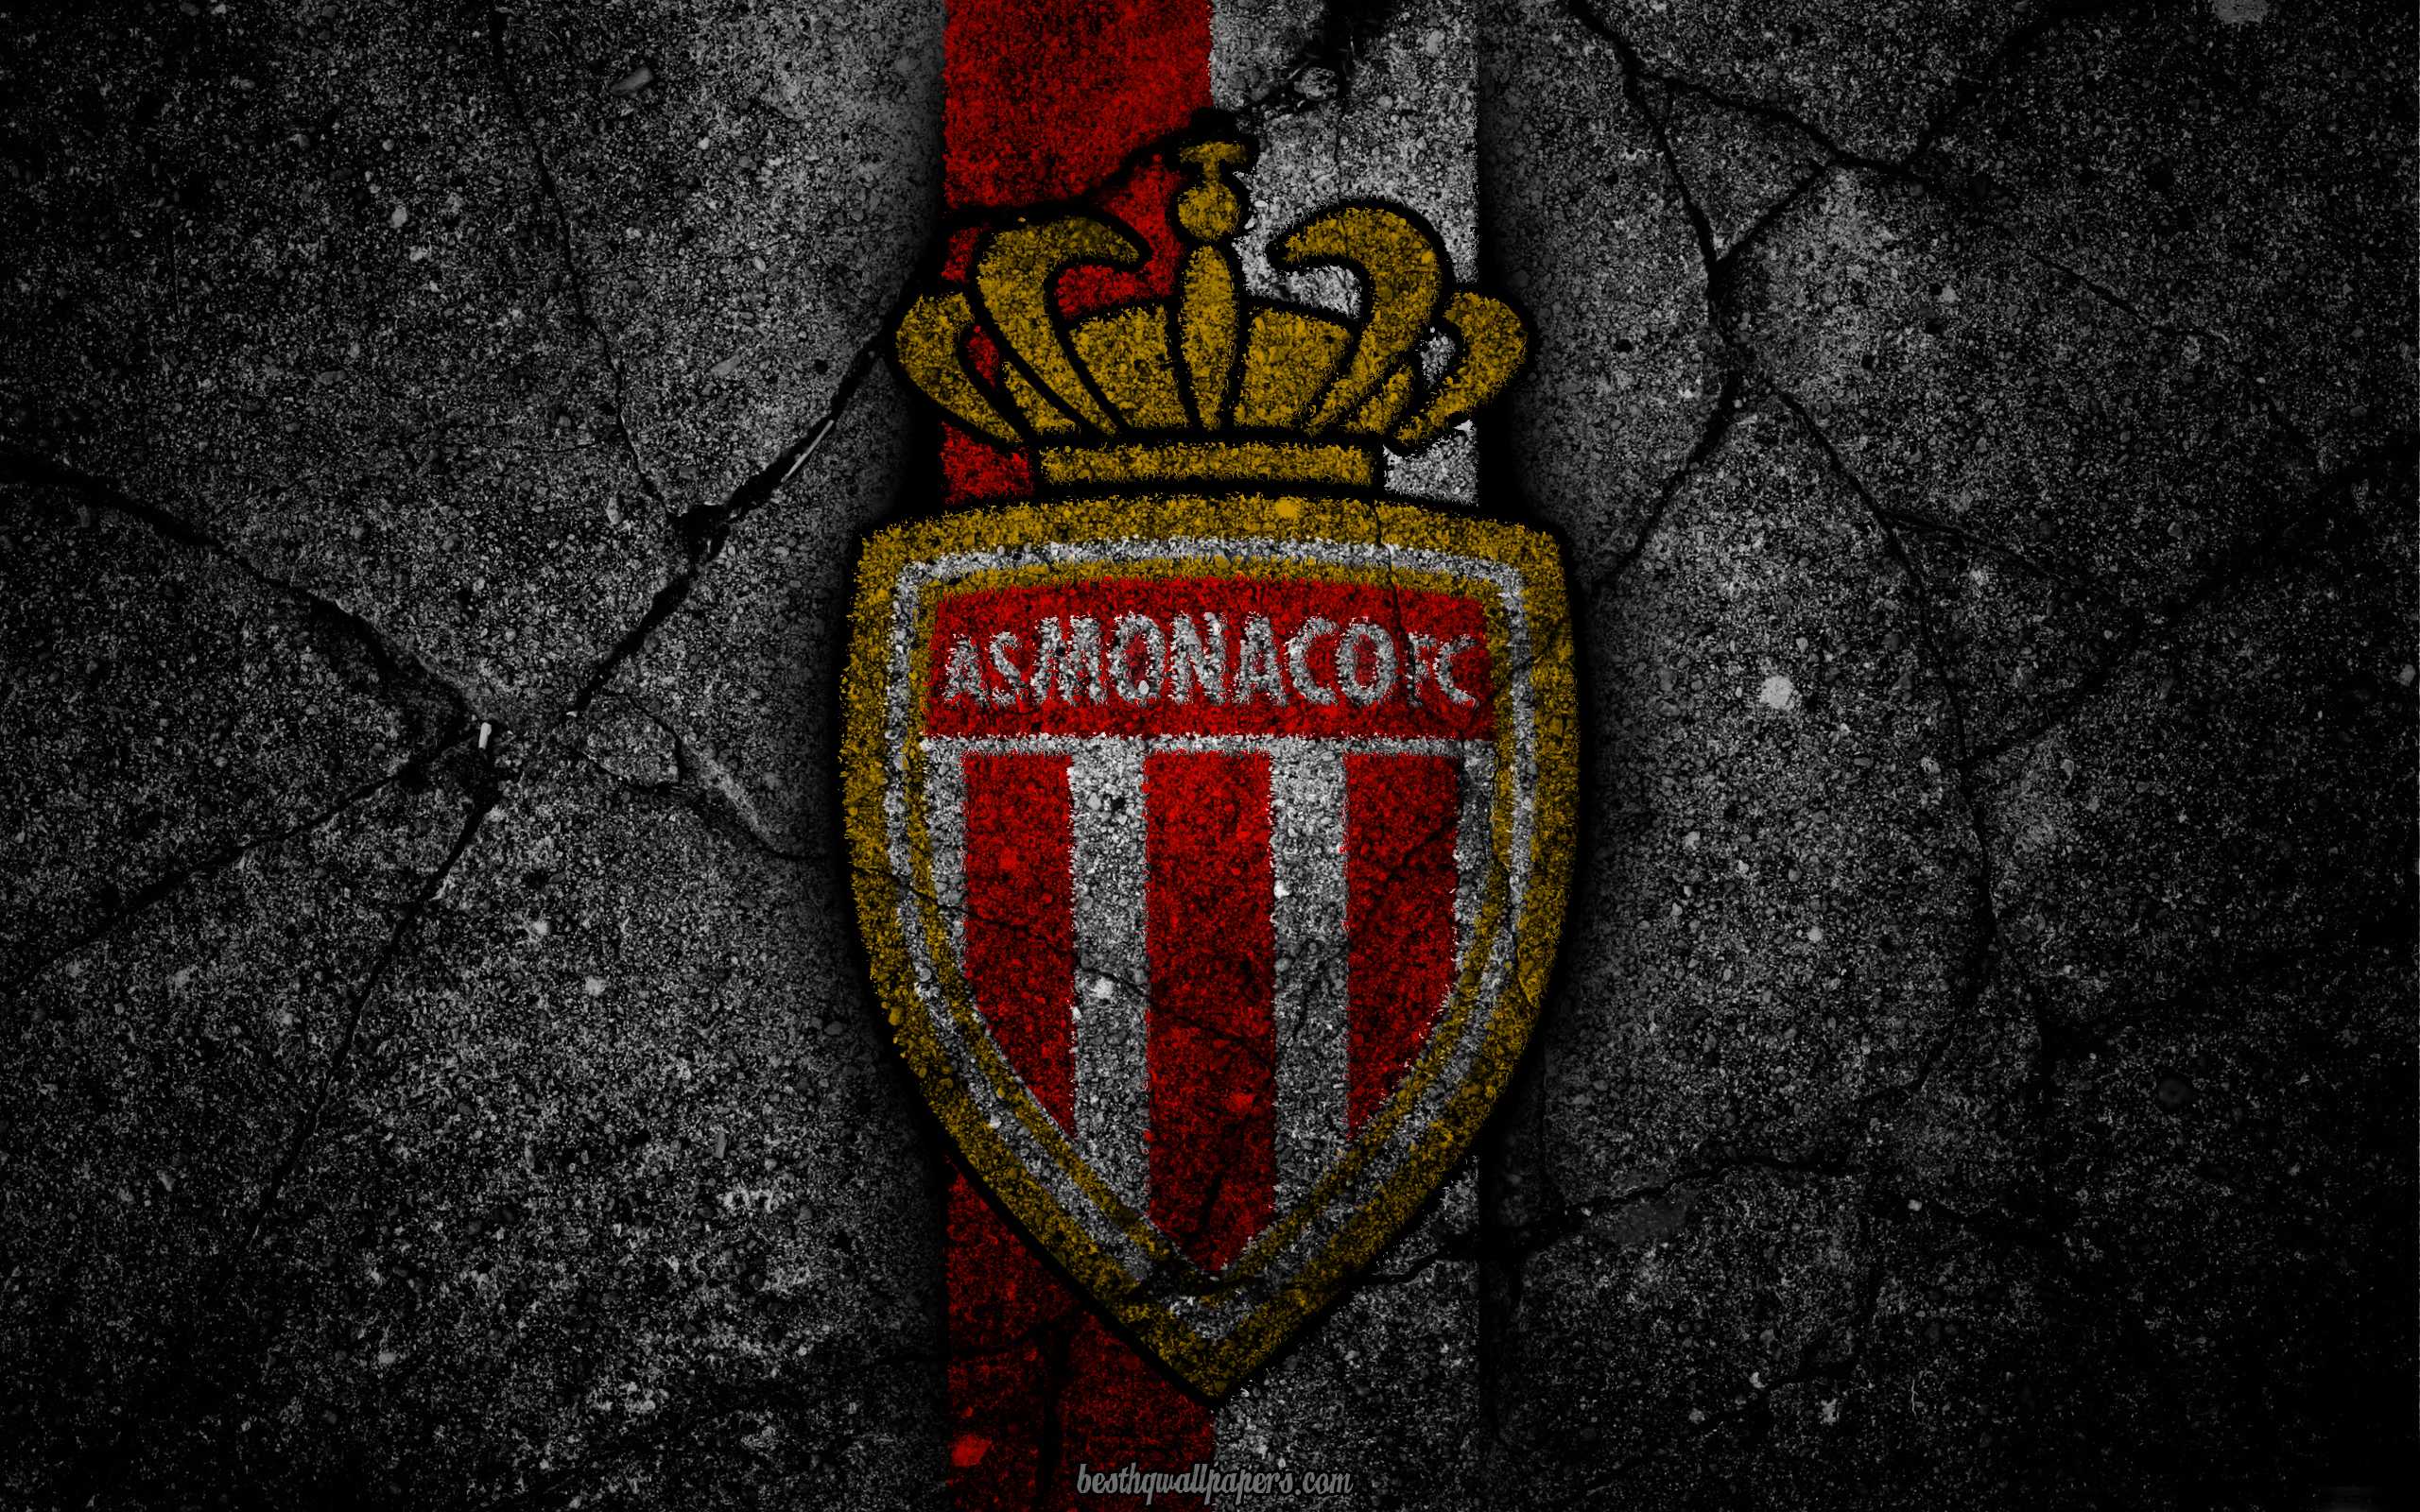 Download wallpapers Monaco logo art Liga 1 soccer football 2560x1600